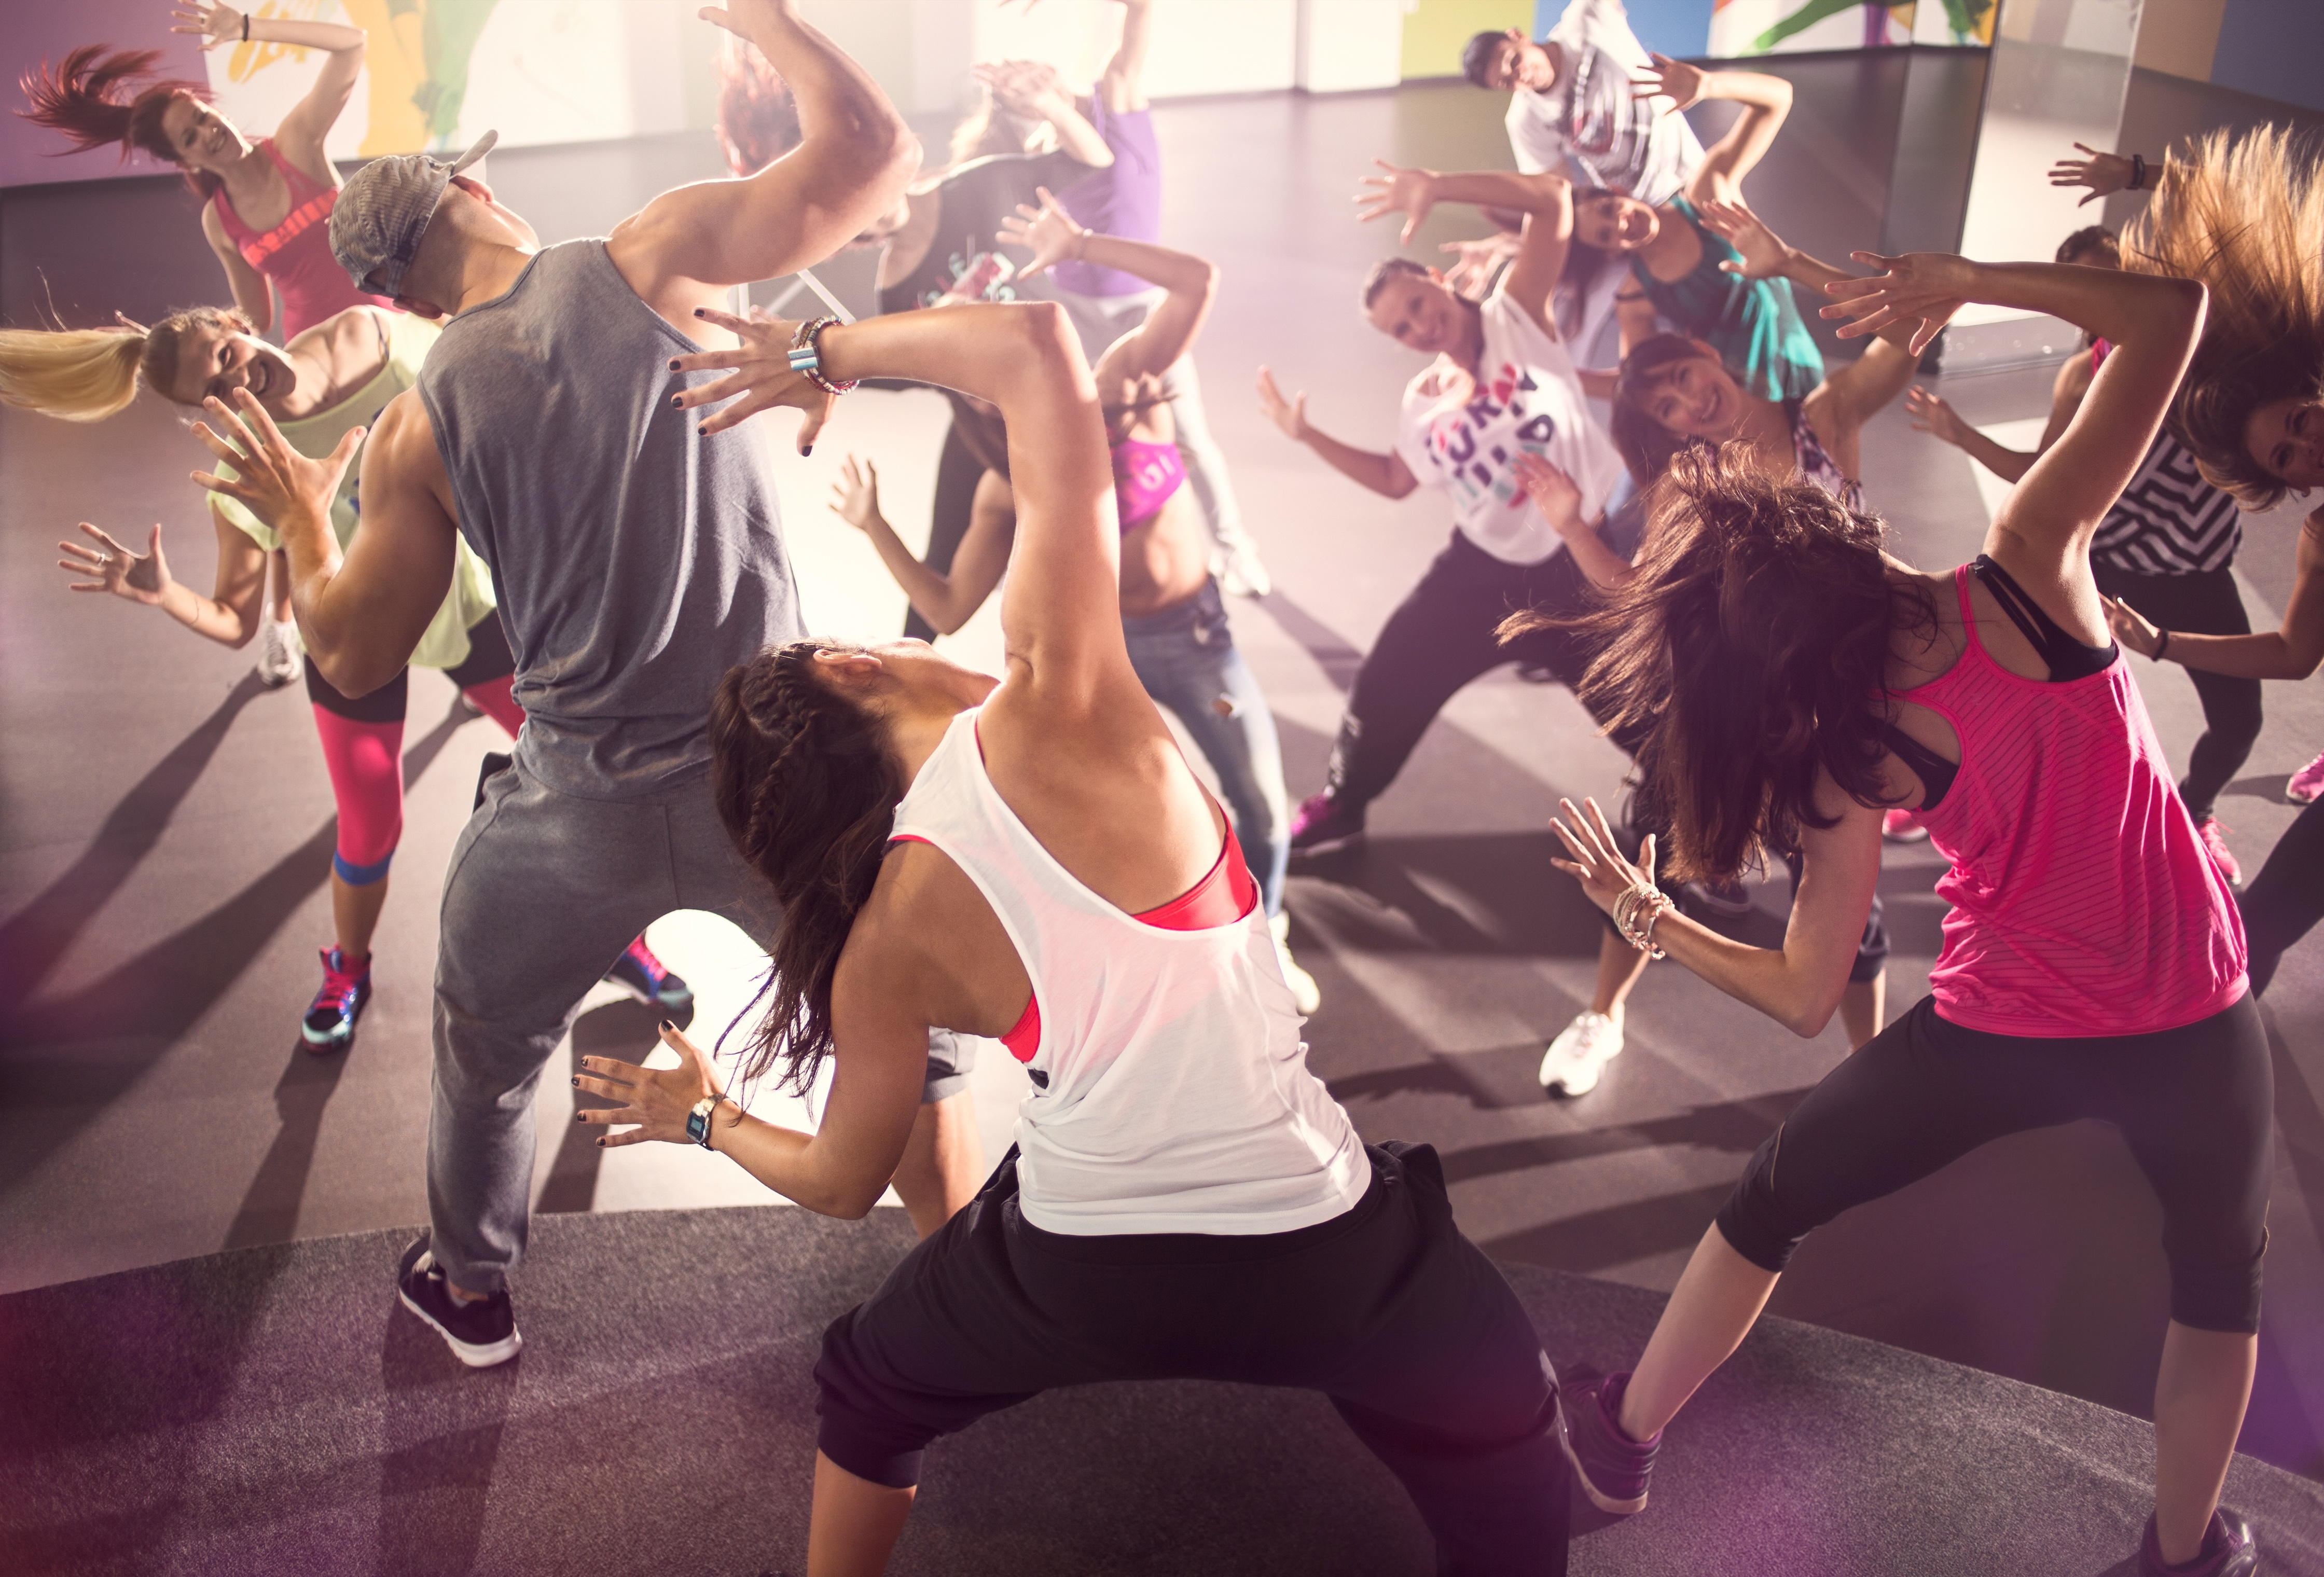 Celebrate events to boost engagement at your gym or fitness center